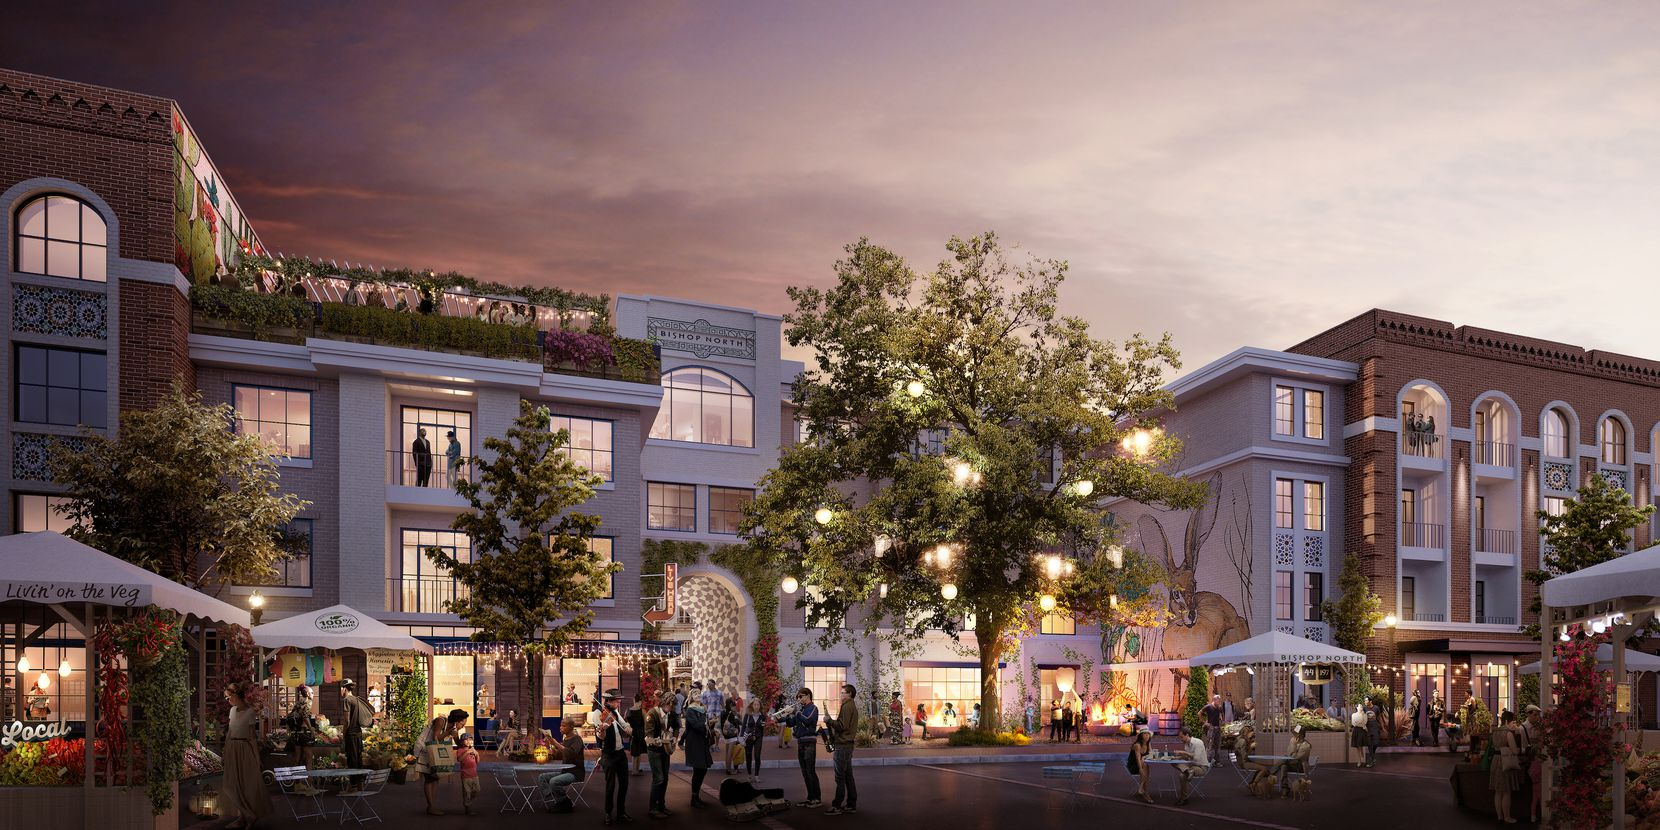 The next phase of the  Bishop Arts project will include apartments, retail and public space.